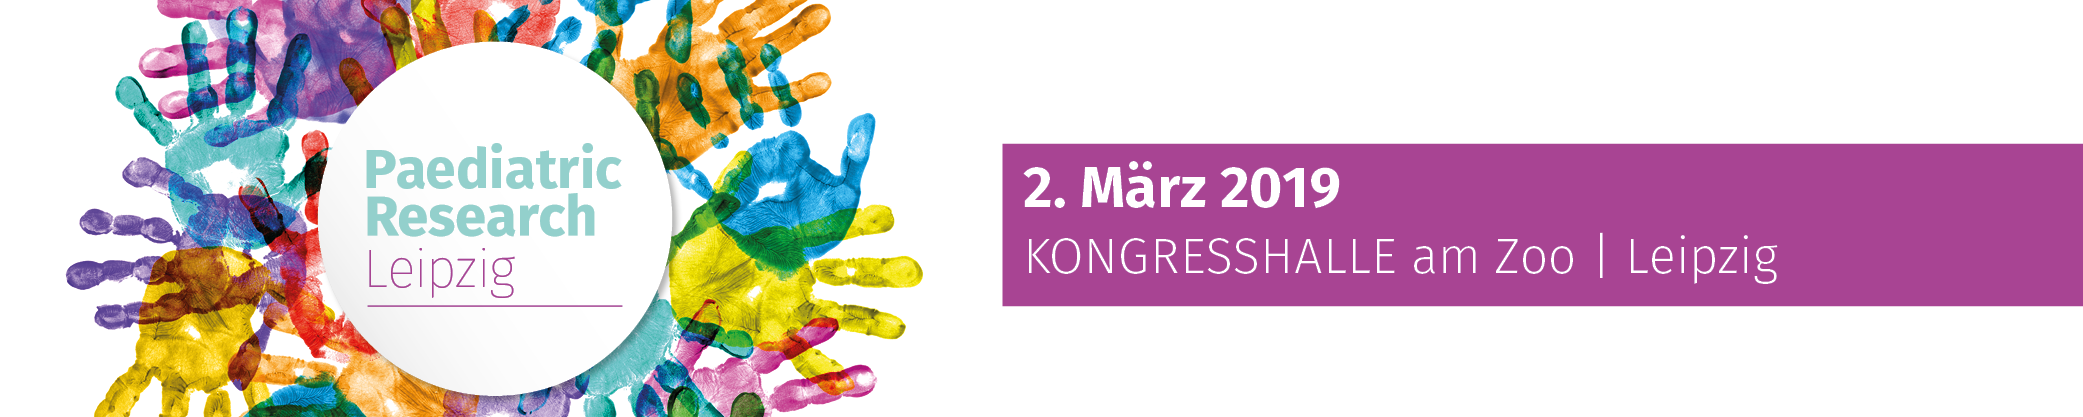 Kongress Pediatric Research